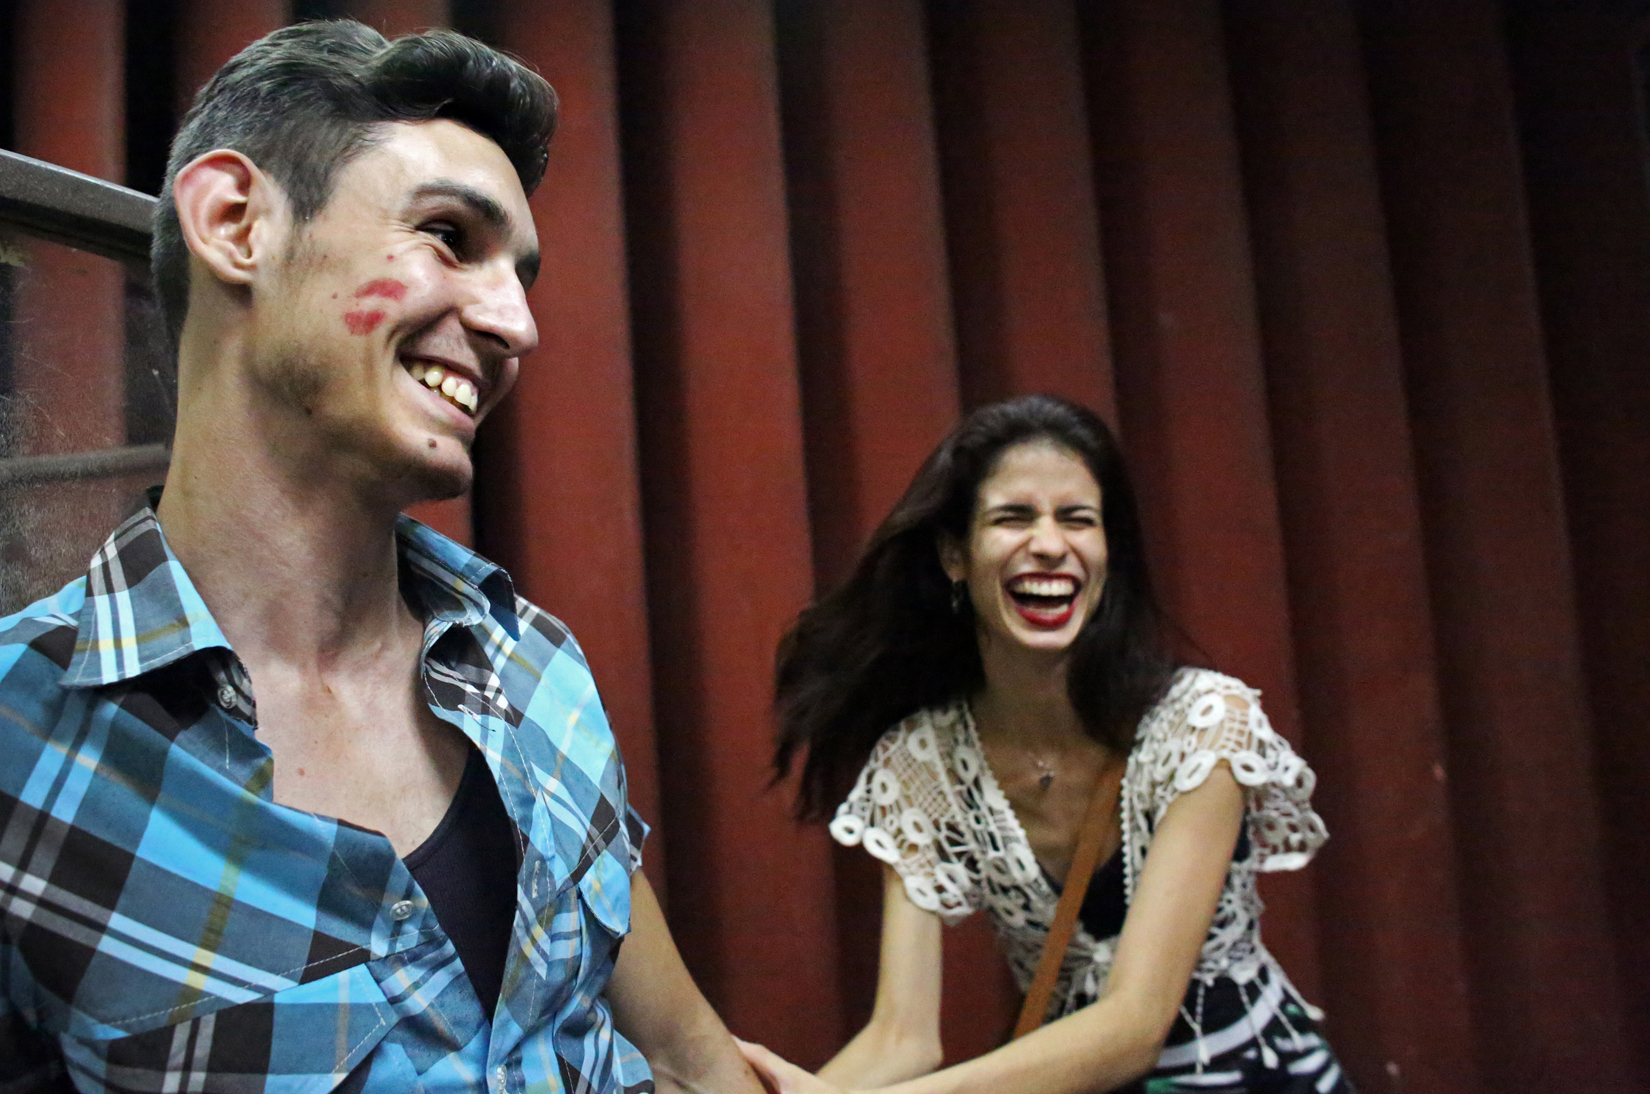 (L-R) Daniel Alemán, 20, a model, and his girlfriend, Kaisa Garcia, 21, a dancer, enjoy each other's company before a Buena Fe concert at Mella theater in Havana, Cuba, on April 16, 2015. Their moments of privacy are rare; like many people their age, they will likely continue to live with their parents for many years before being able to afford living in a place of their own. Garcia wants to remain a dancer but does not think she can, on what she anticipates to be extremely low pay. {quote}If you can forget  about the economy, the safety here is nice,{quote} she says. {quote}I just try to create a bubble in my mind away from anything that doesn't work in the country, and I am happy.{quote}